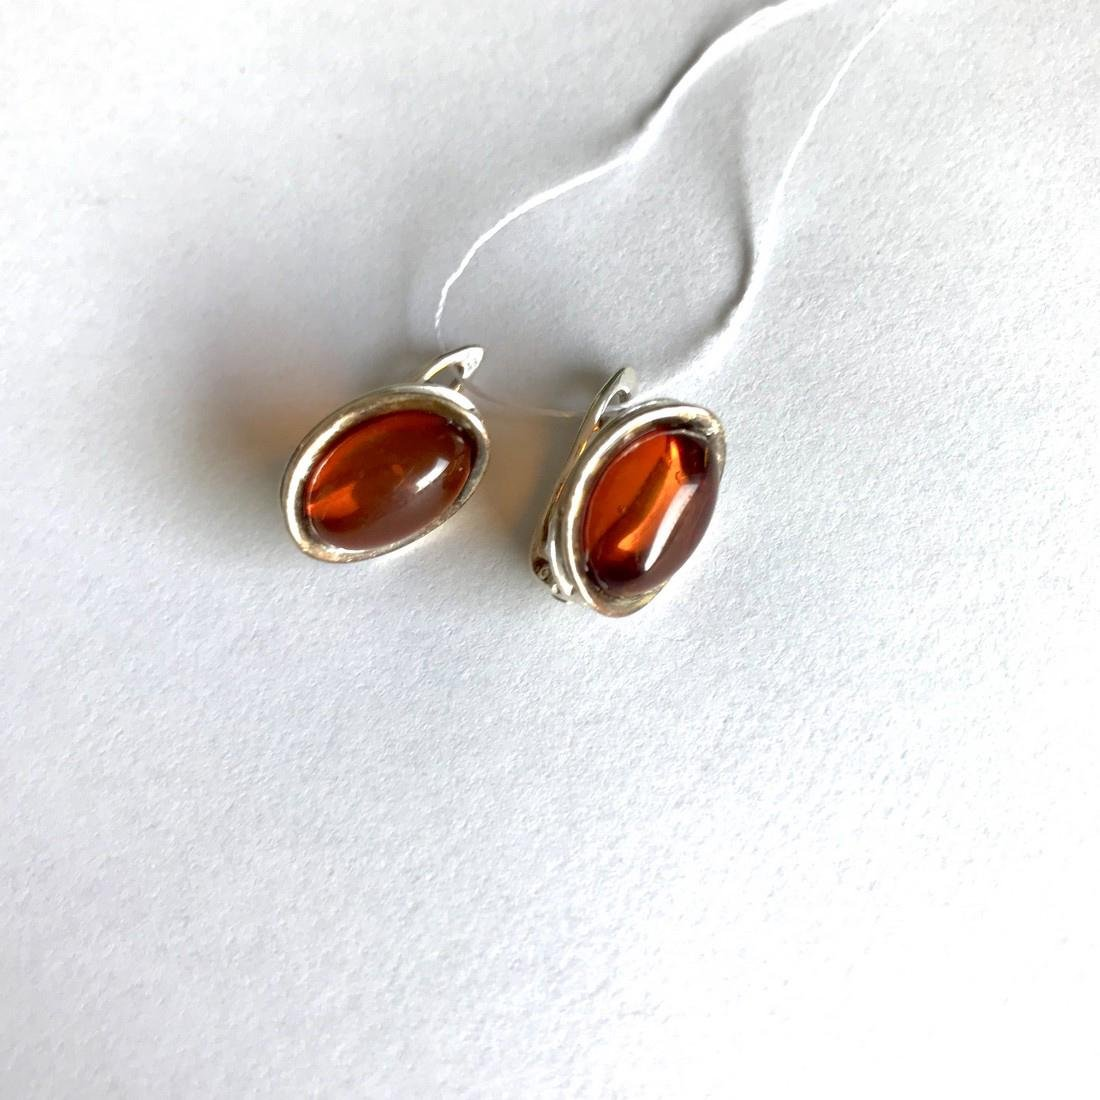 Earrings Sterling silver and Baltic amber, seal - 4